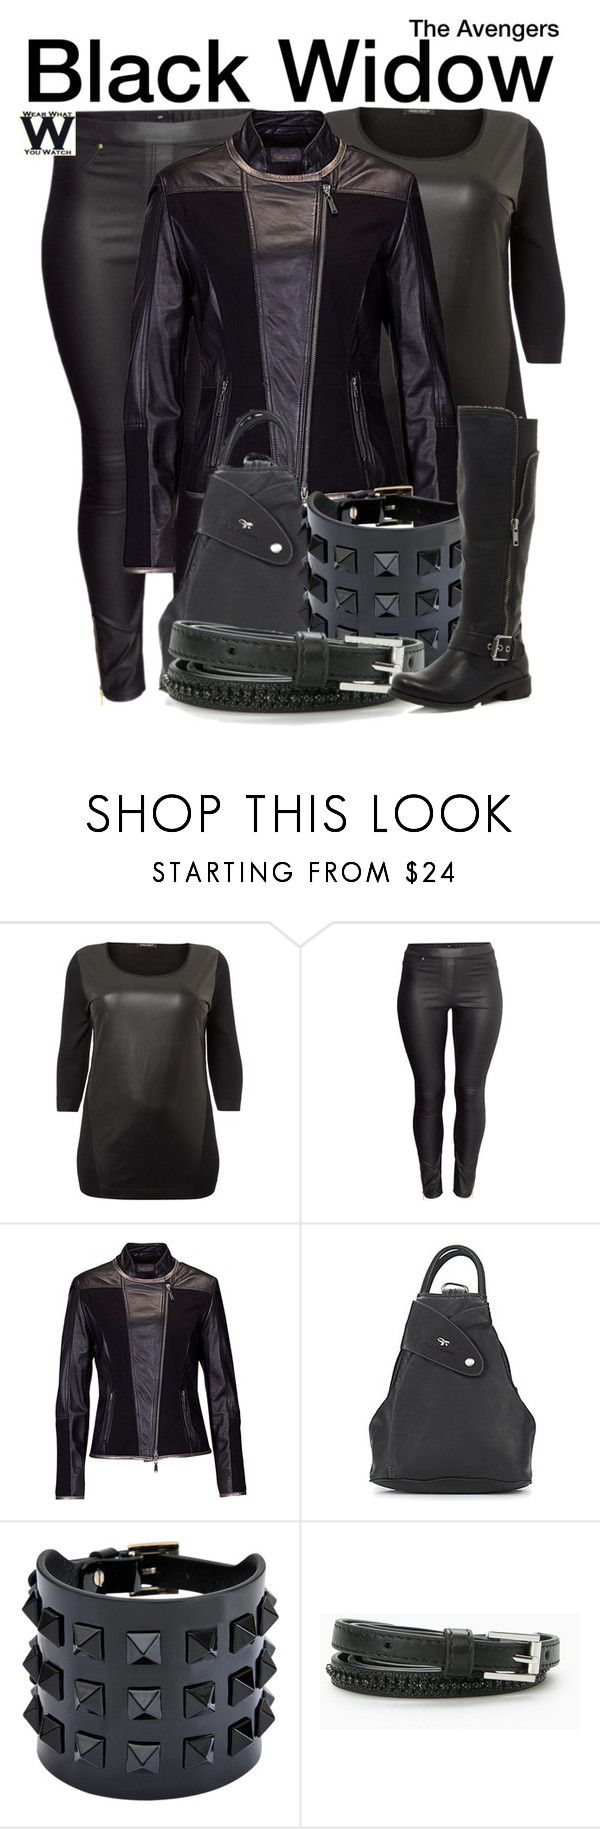 """""""The Avengers"""" by wearwhatyouwatch ❤ liked on Polyvore featuring Marina Rinaldi, H&M, Betty Barclay, Valentino, MANGO, River Island, wearwhatyouwatch, marvel and film"""